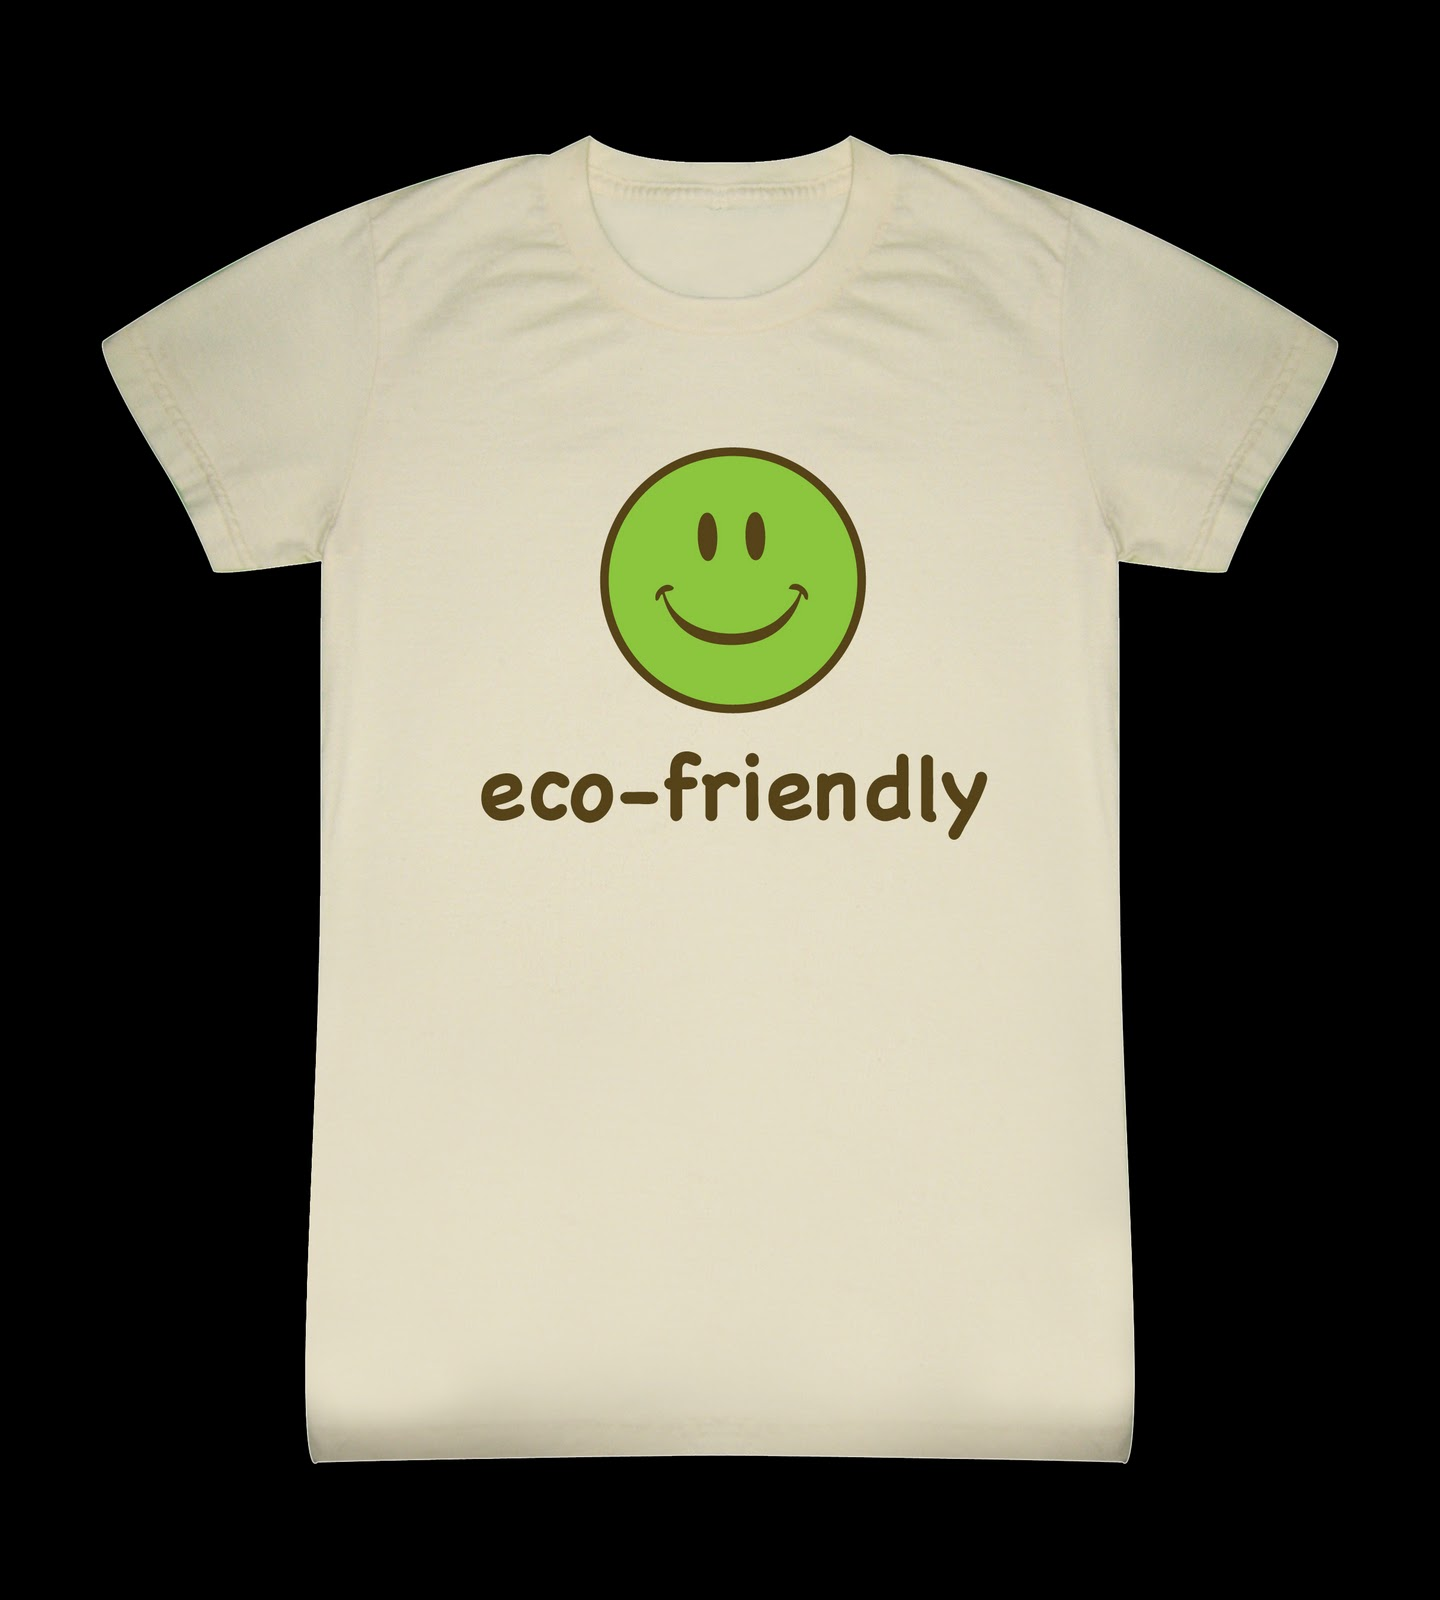 carolina chacin graphic design granola hip eco ForEnvironmentally Friendly T Shirts